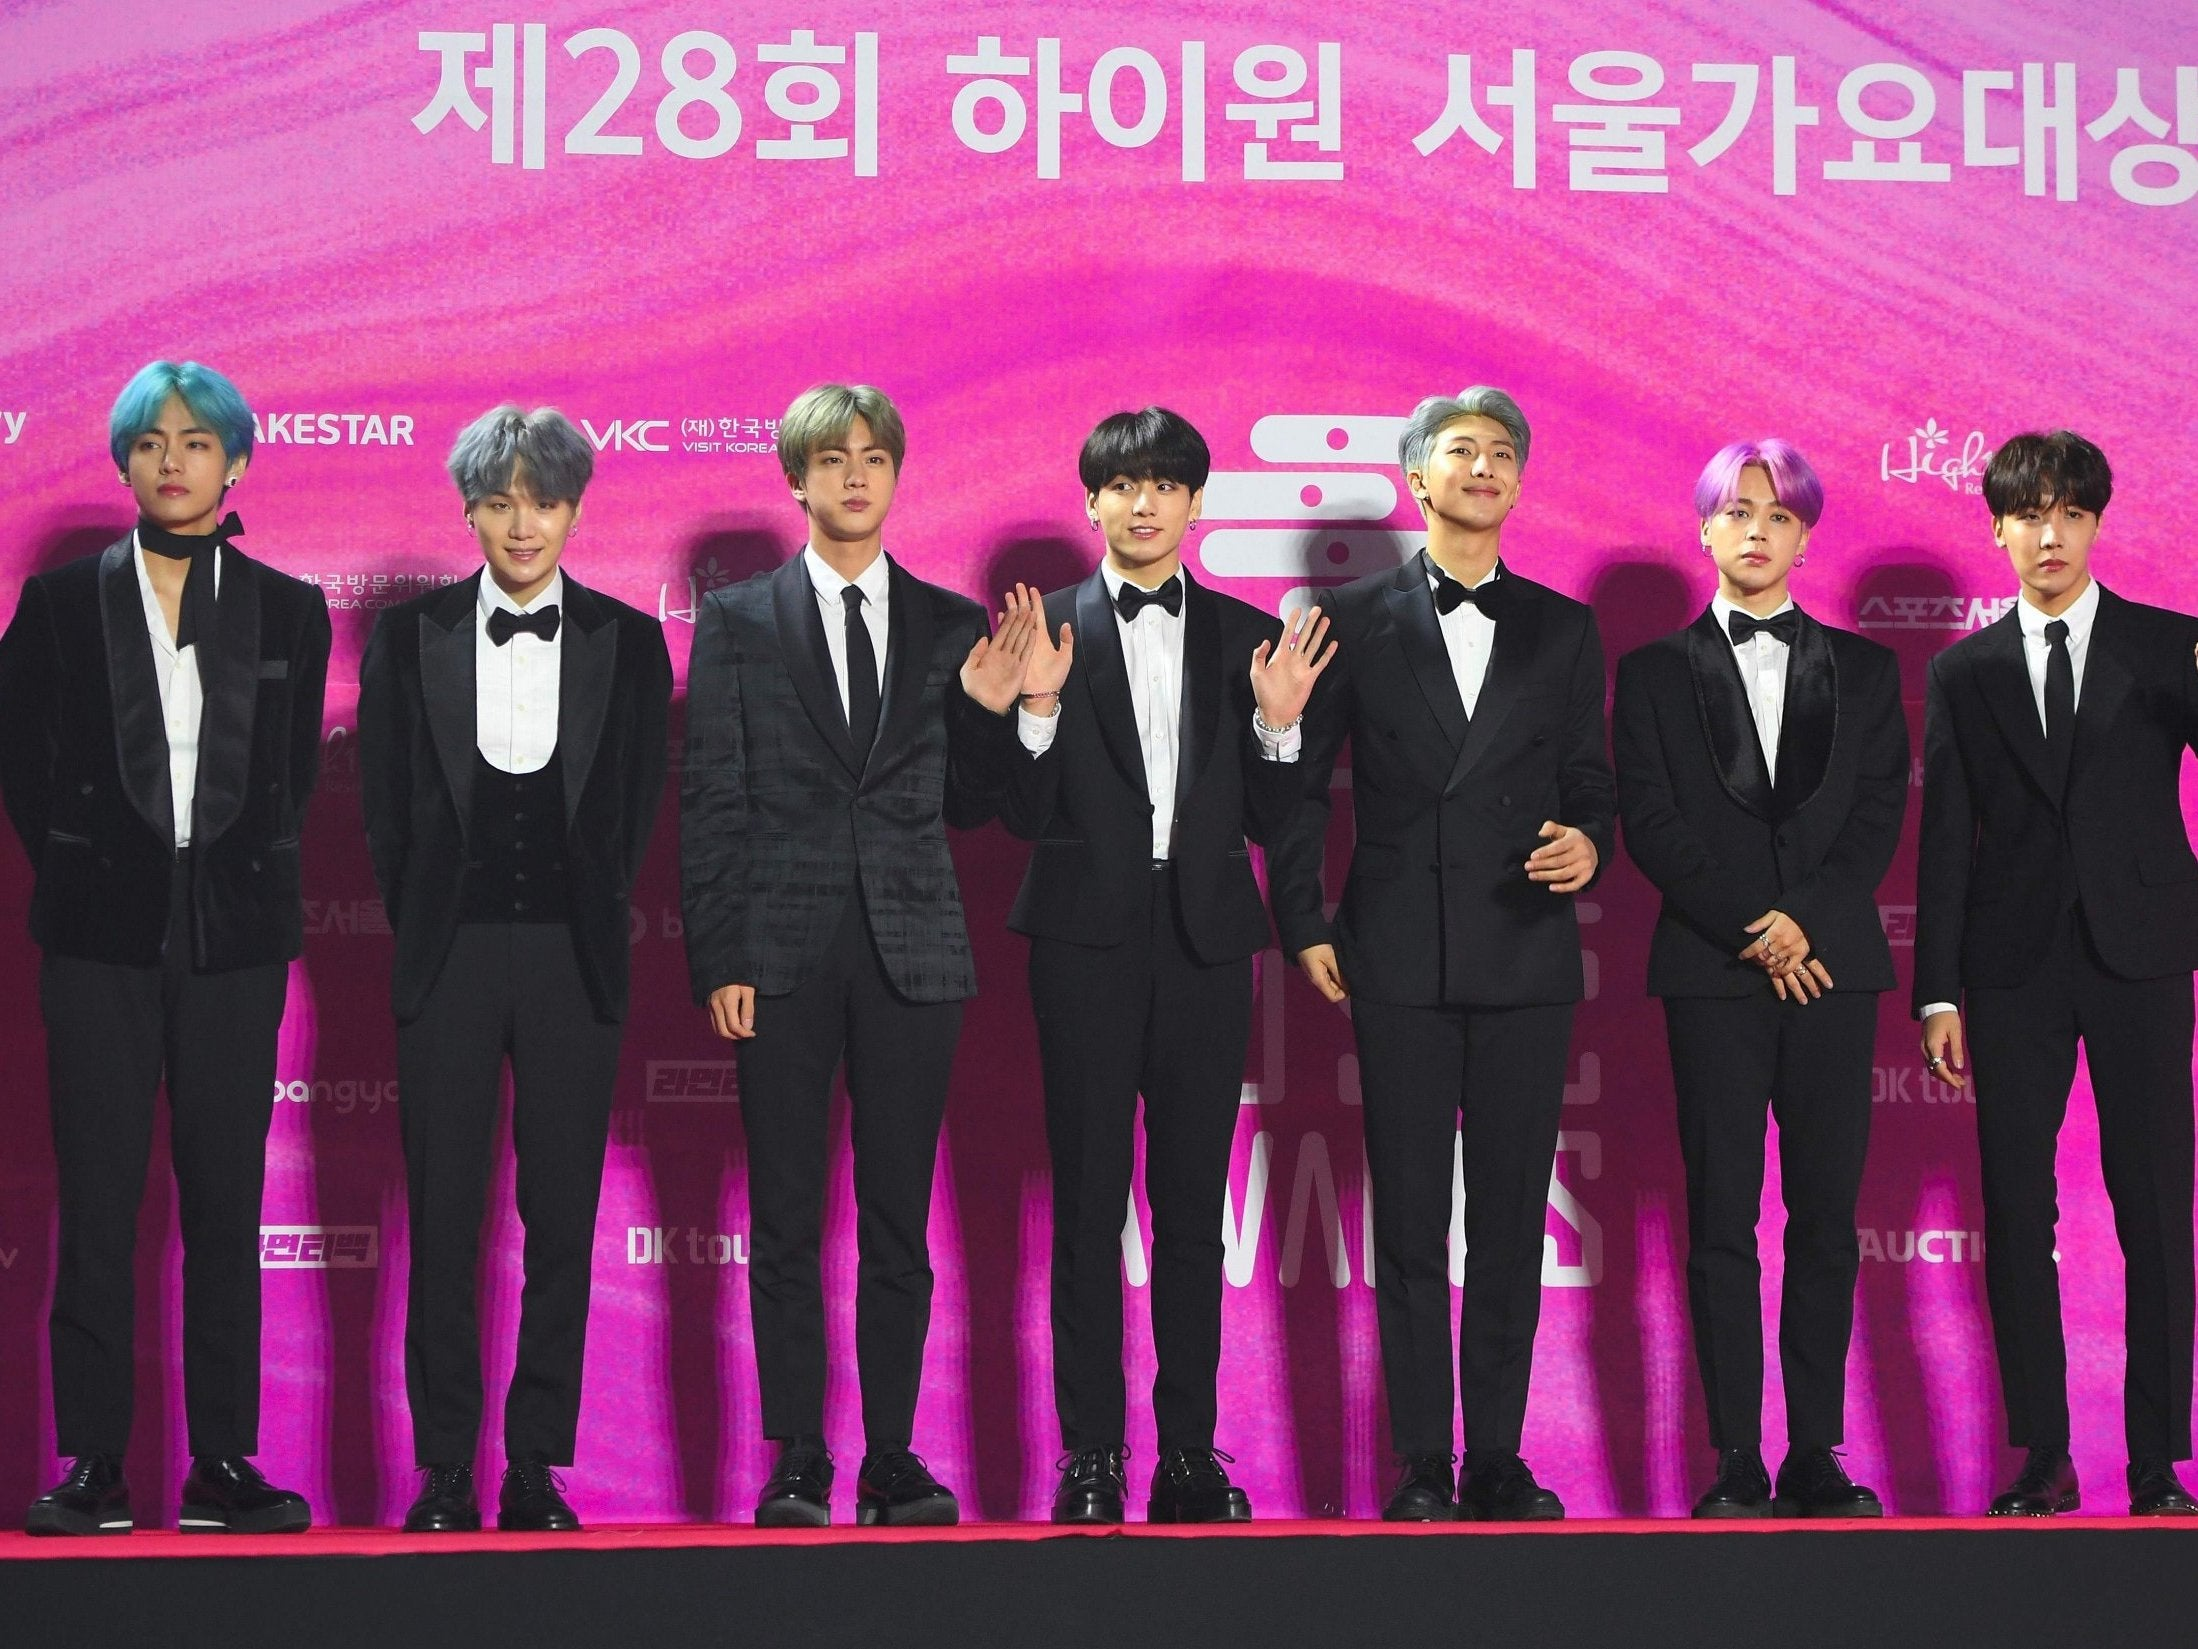 Grammys 2019 Bts To Present Award At Ceremony The Independent